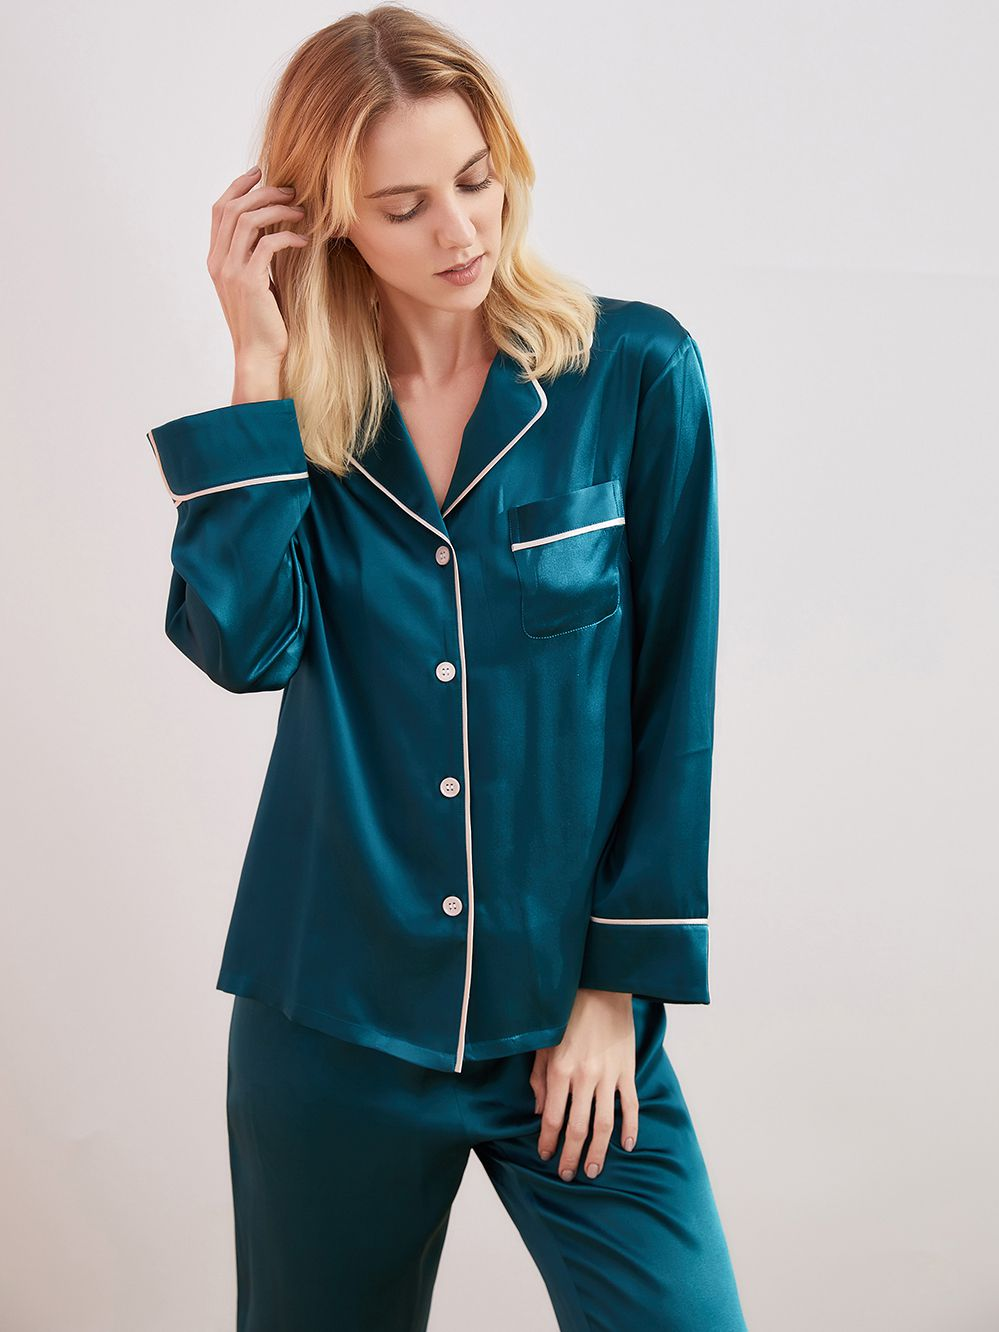 19 Momme Full Length Dark Teal Silk Pyjama Sets For Women